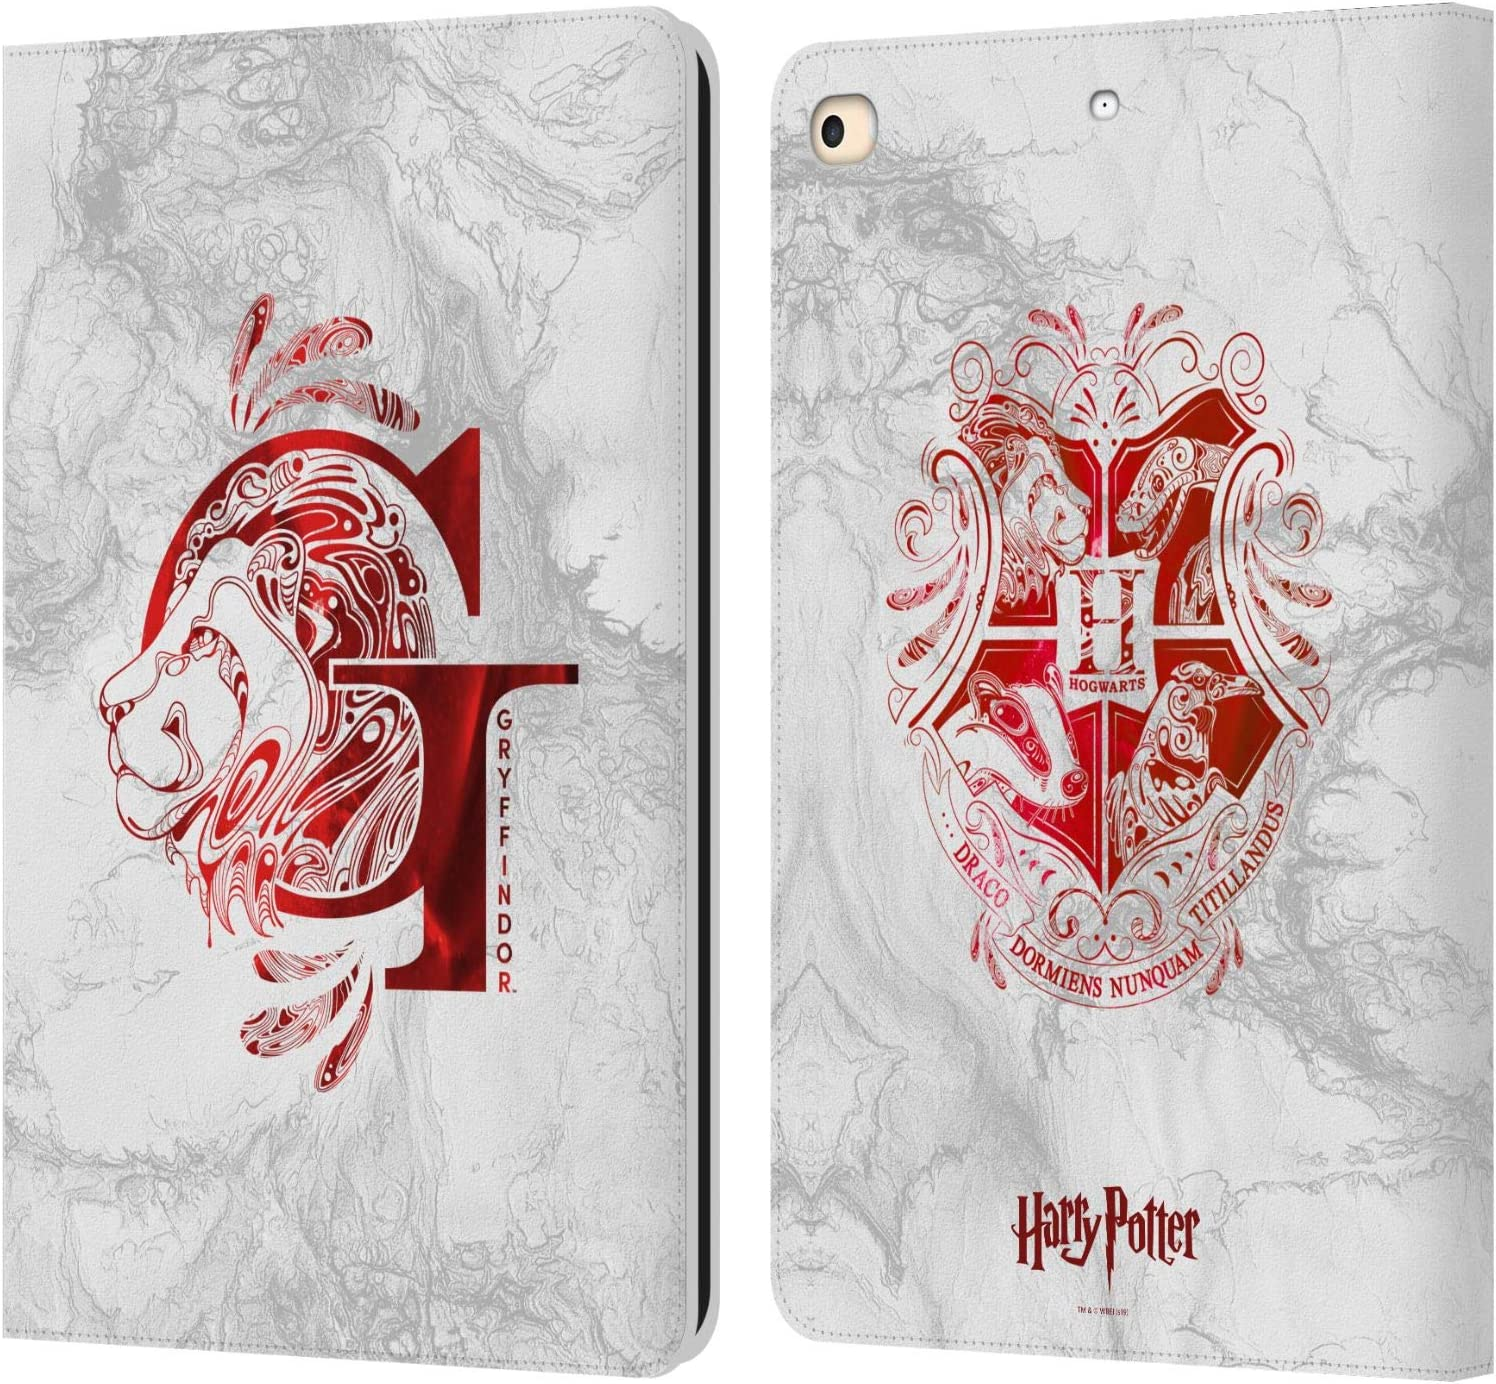 Head Case Designs Officially Licensed Harry Potter Gryffindor Aguamenti Deathly Hallows IX Leather Book Wallet Case Cover Compatible with Apple iPad 9.7 2017 / iPad 9.7 2018